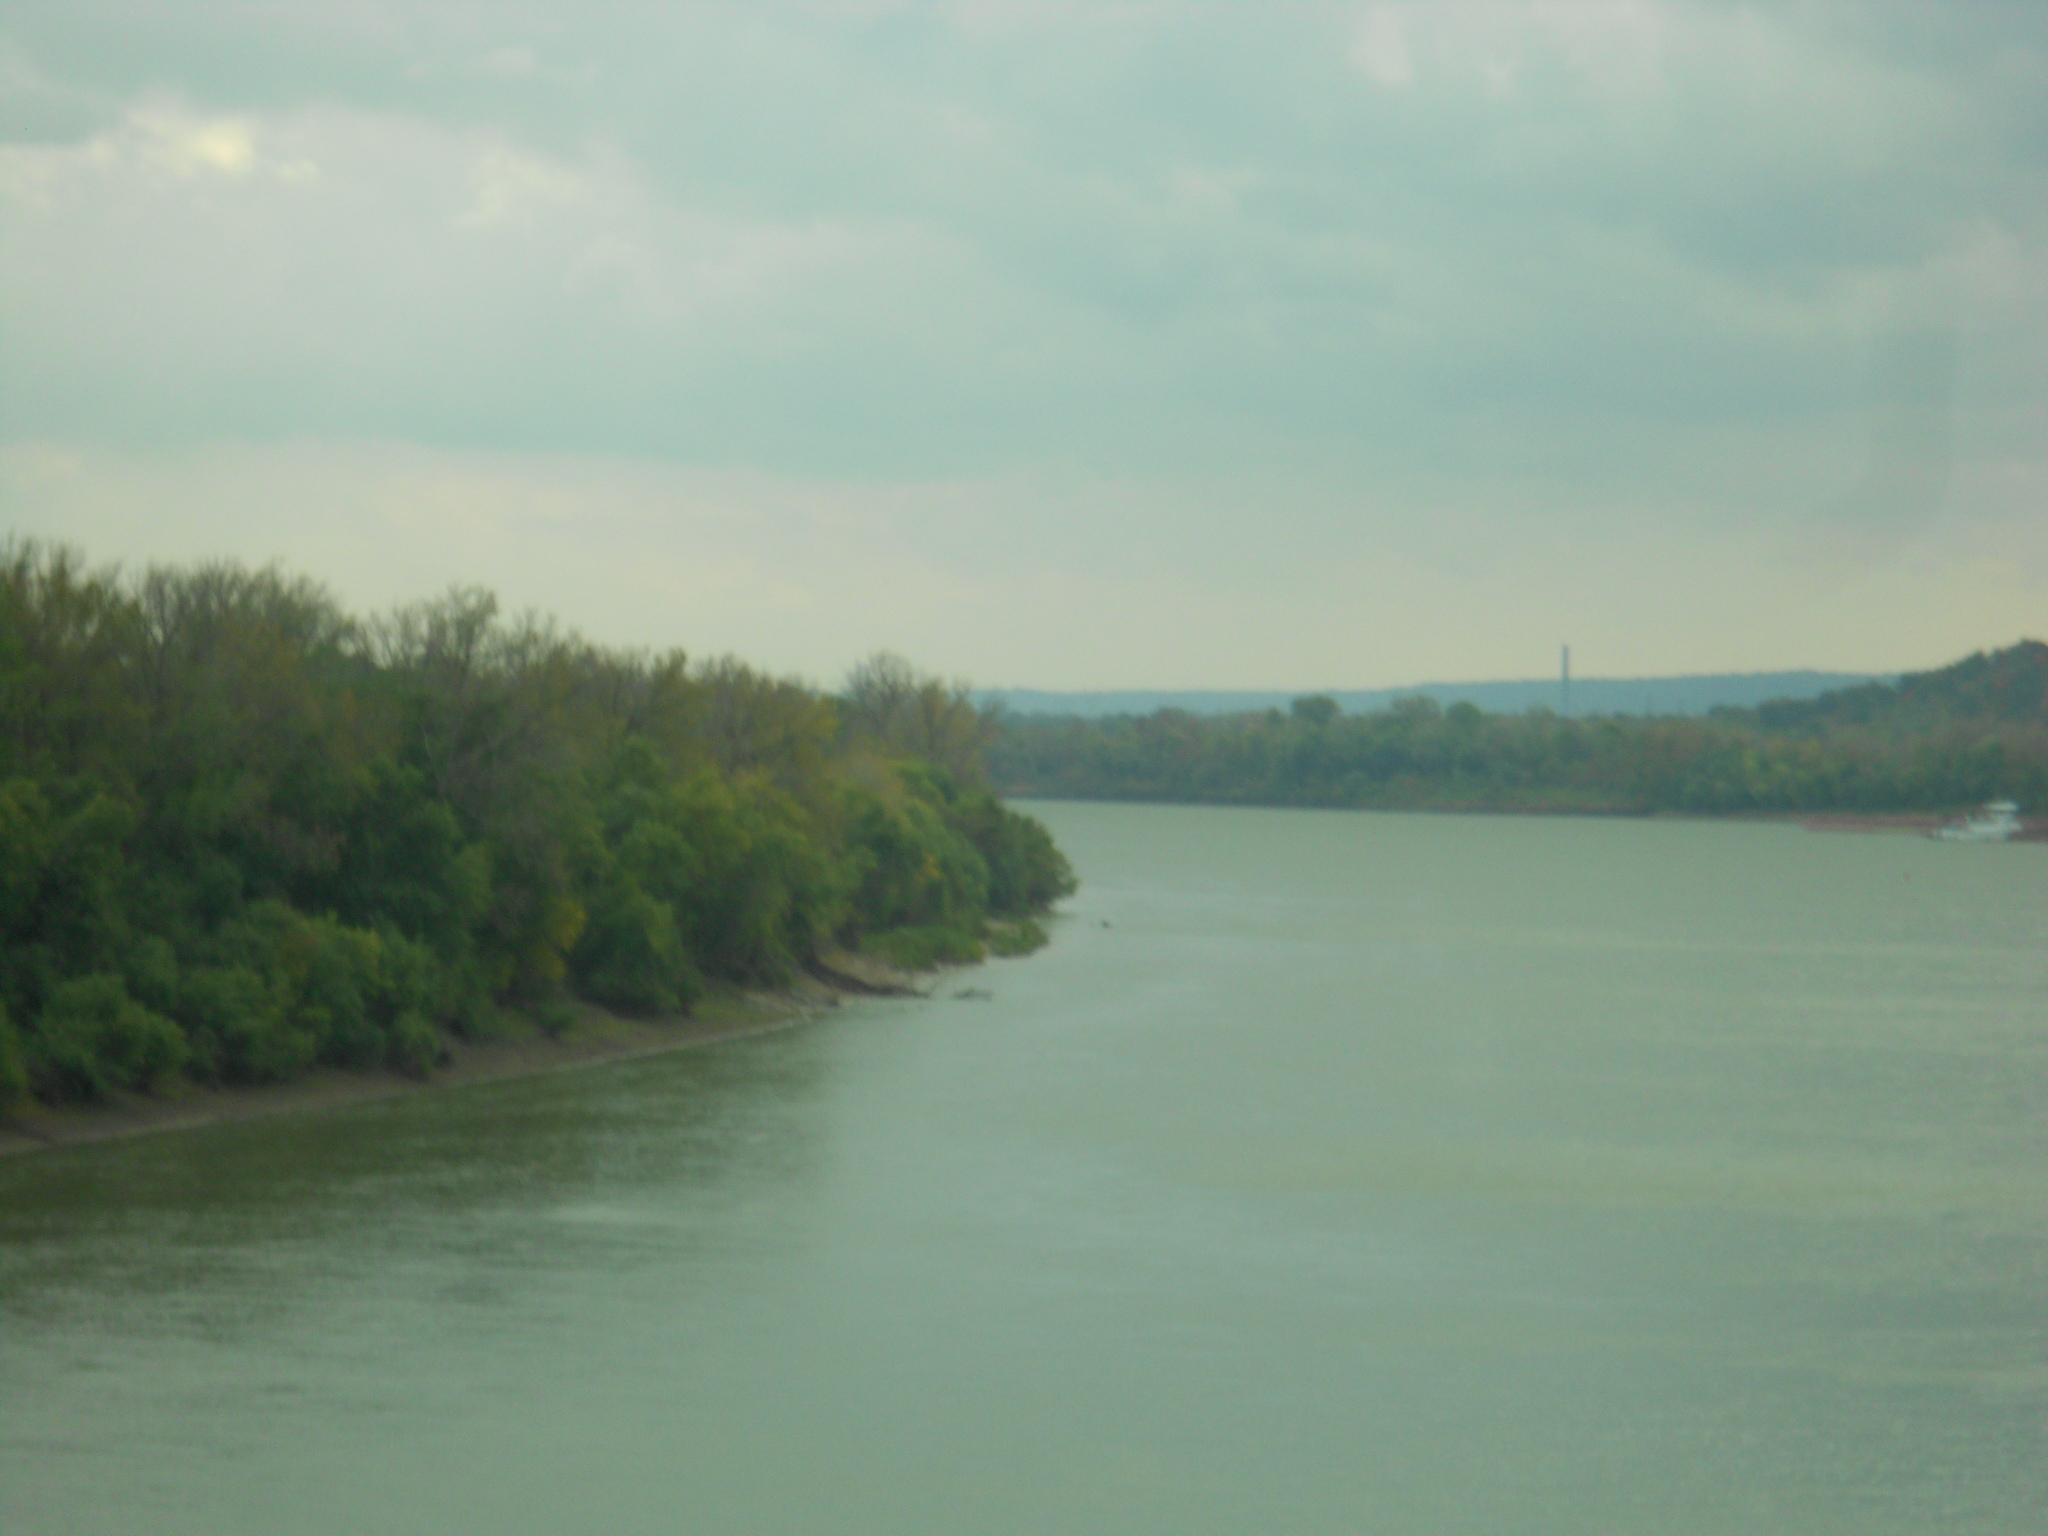 The Ohio River at Louisville, KY